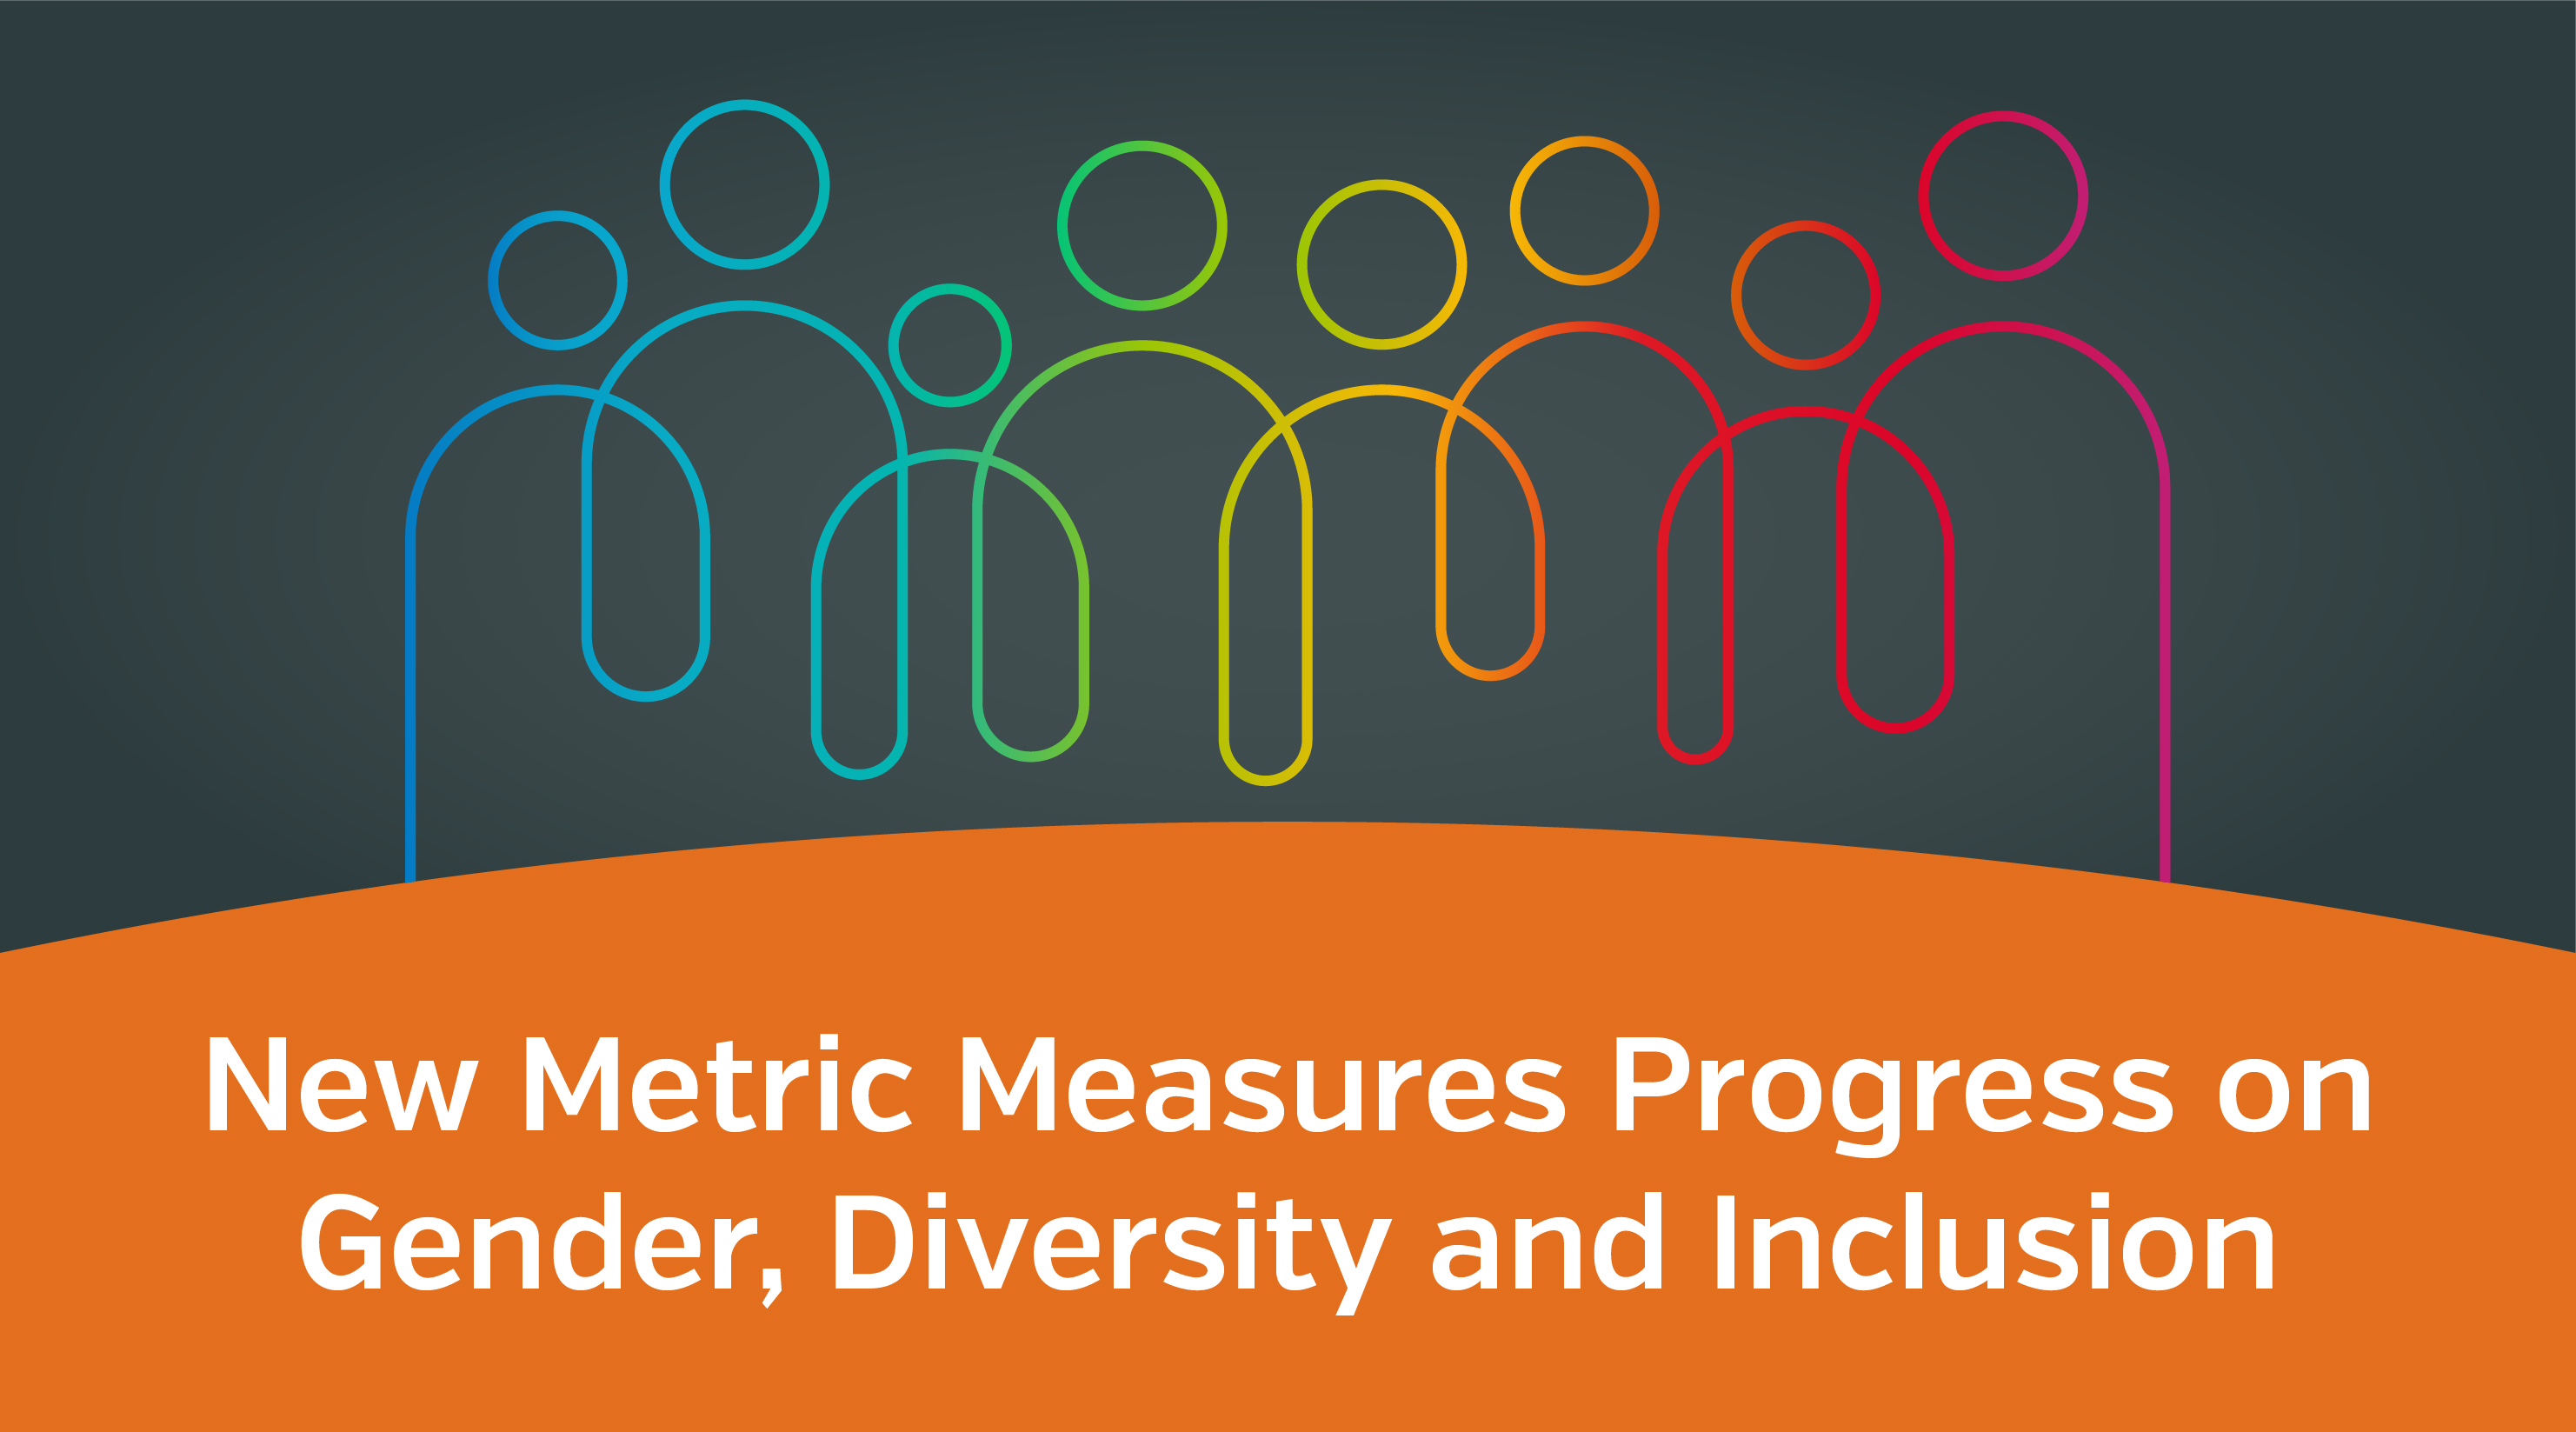 New Metric Measures Progress on Gender, Diversity and Inclusion